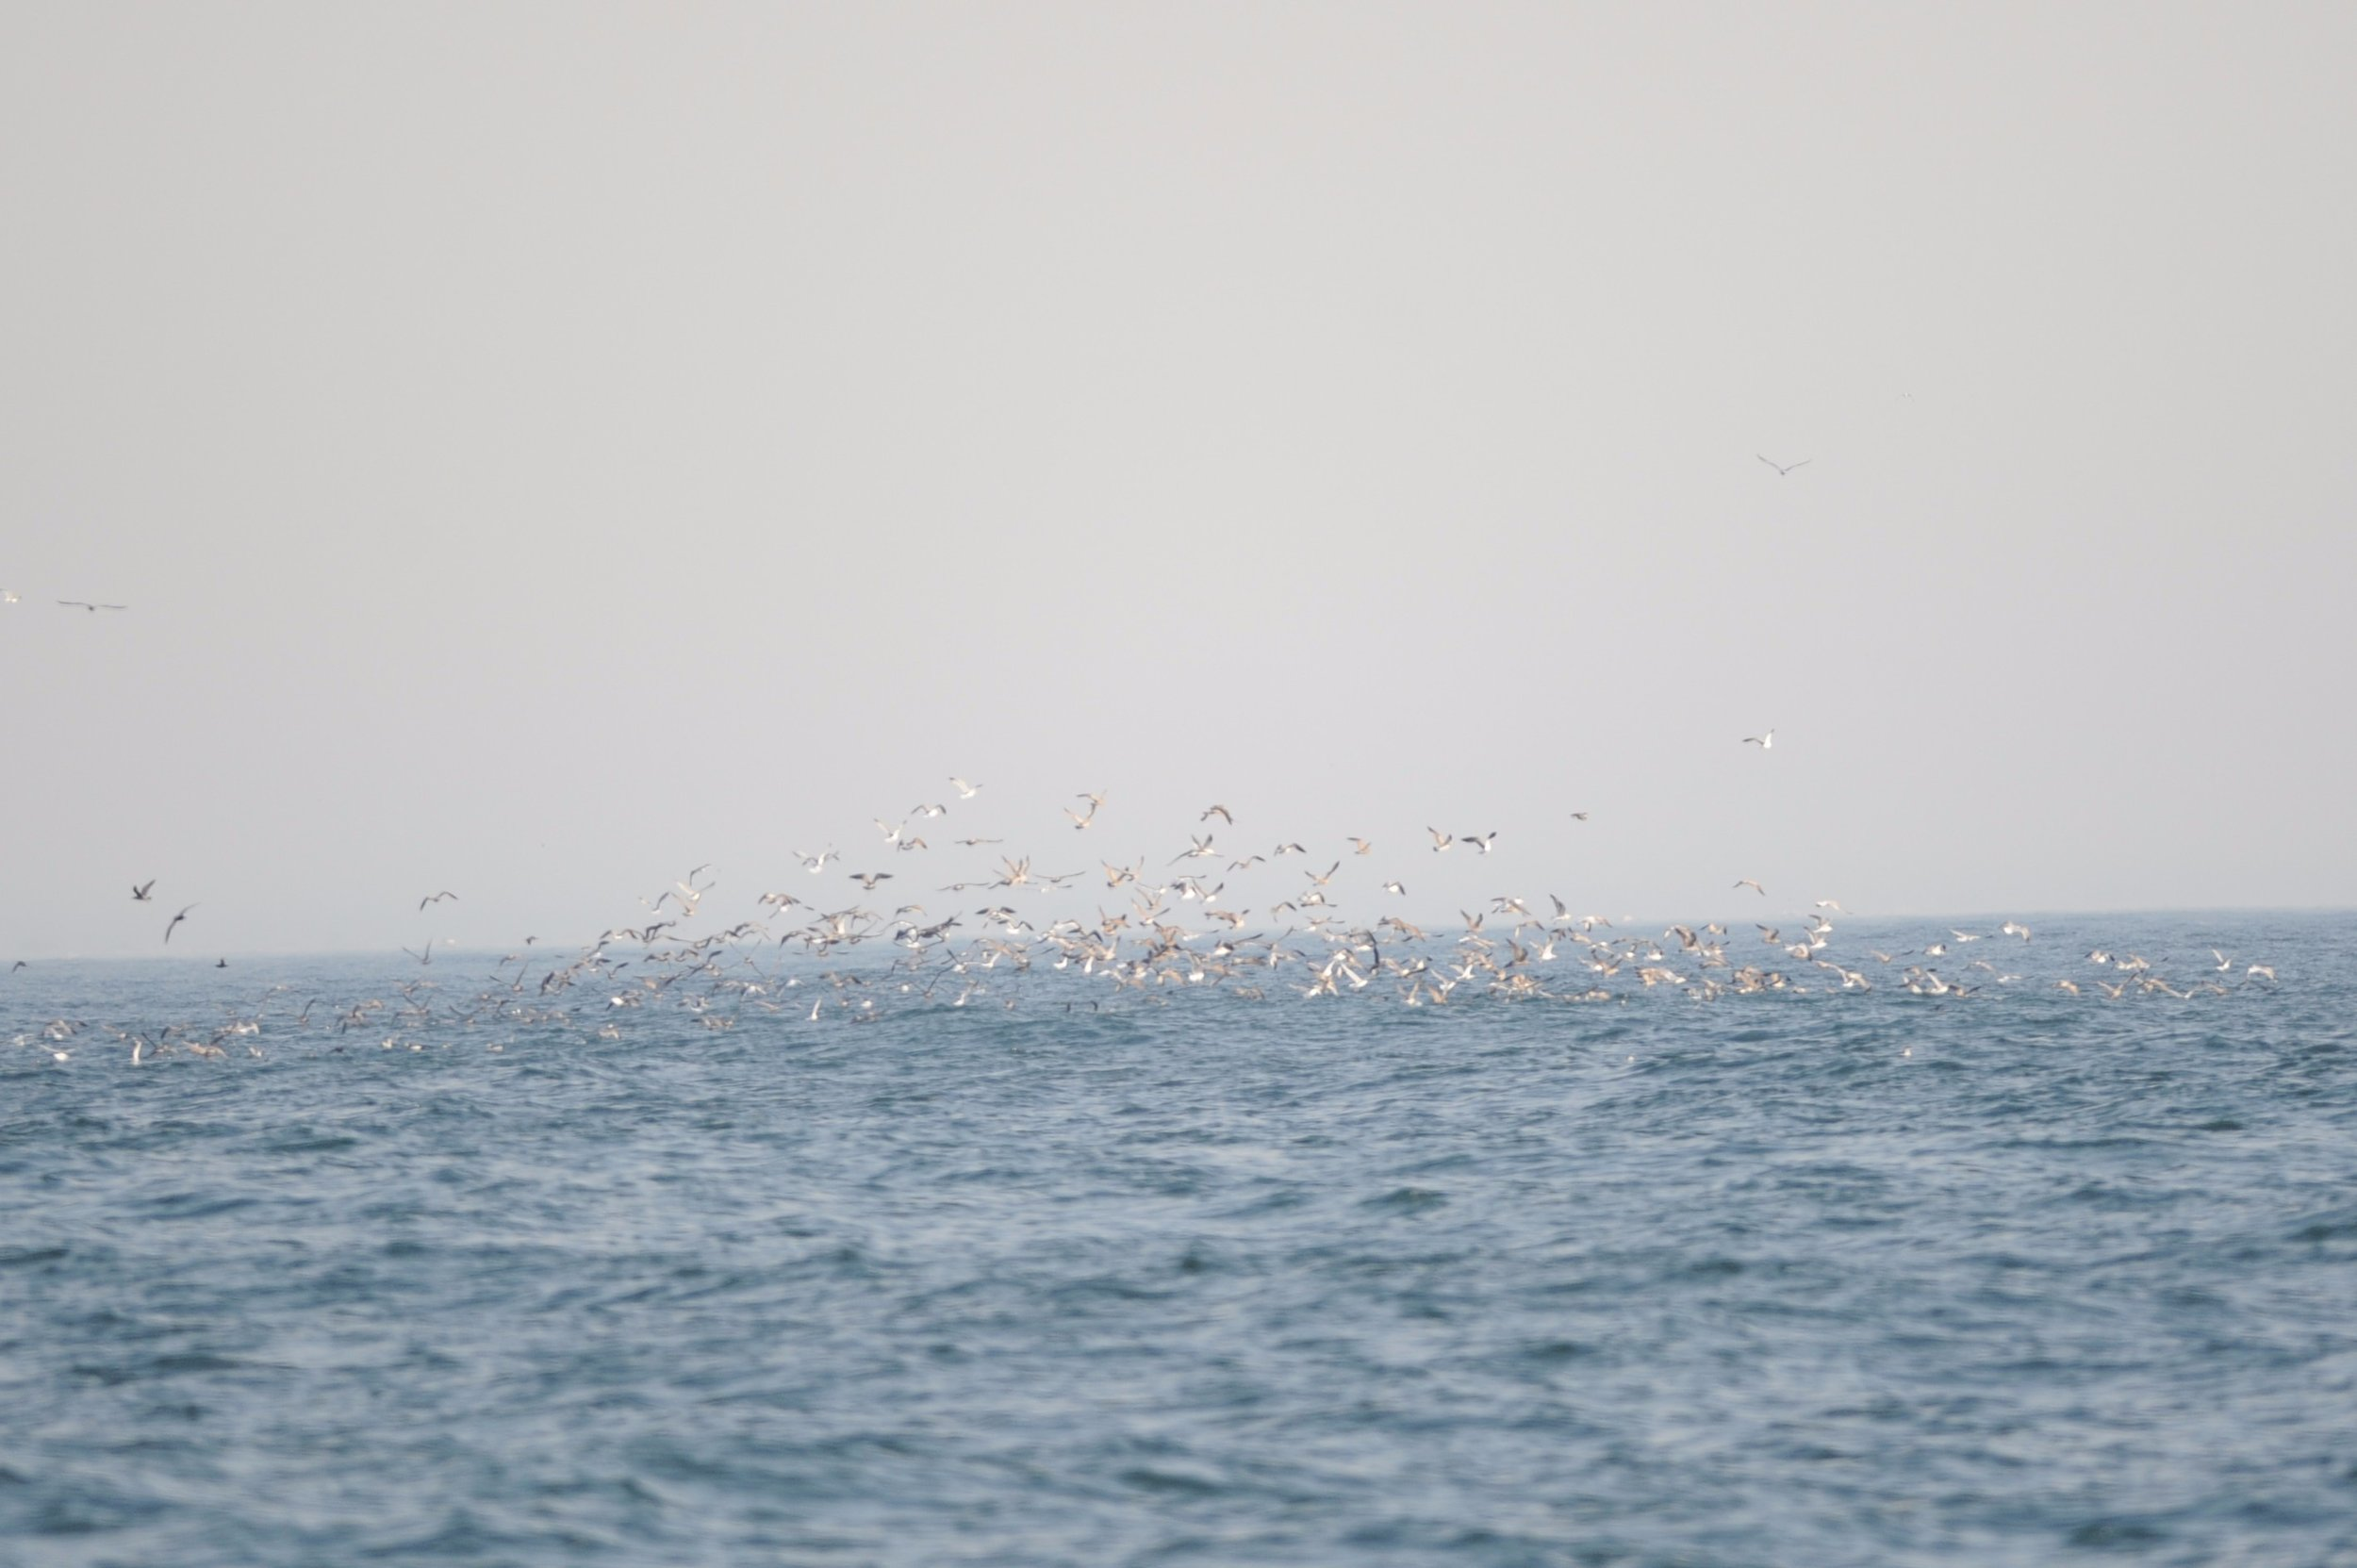 Huge group of birds hovering over a bait ball.